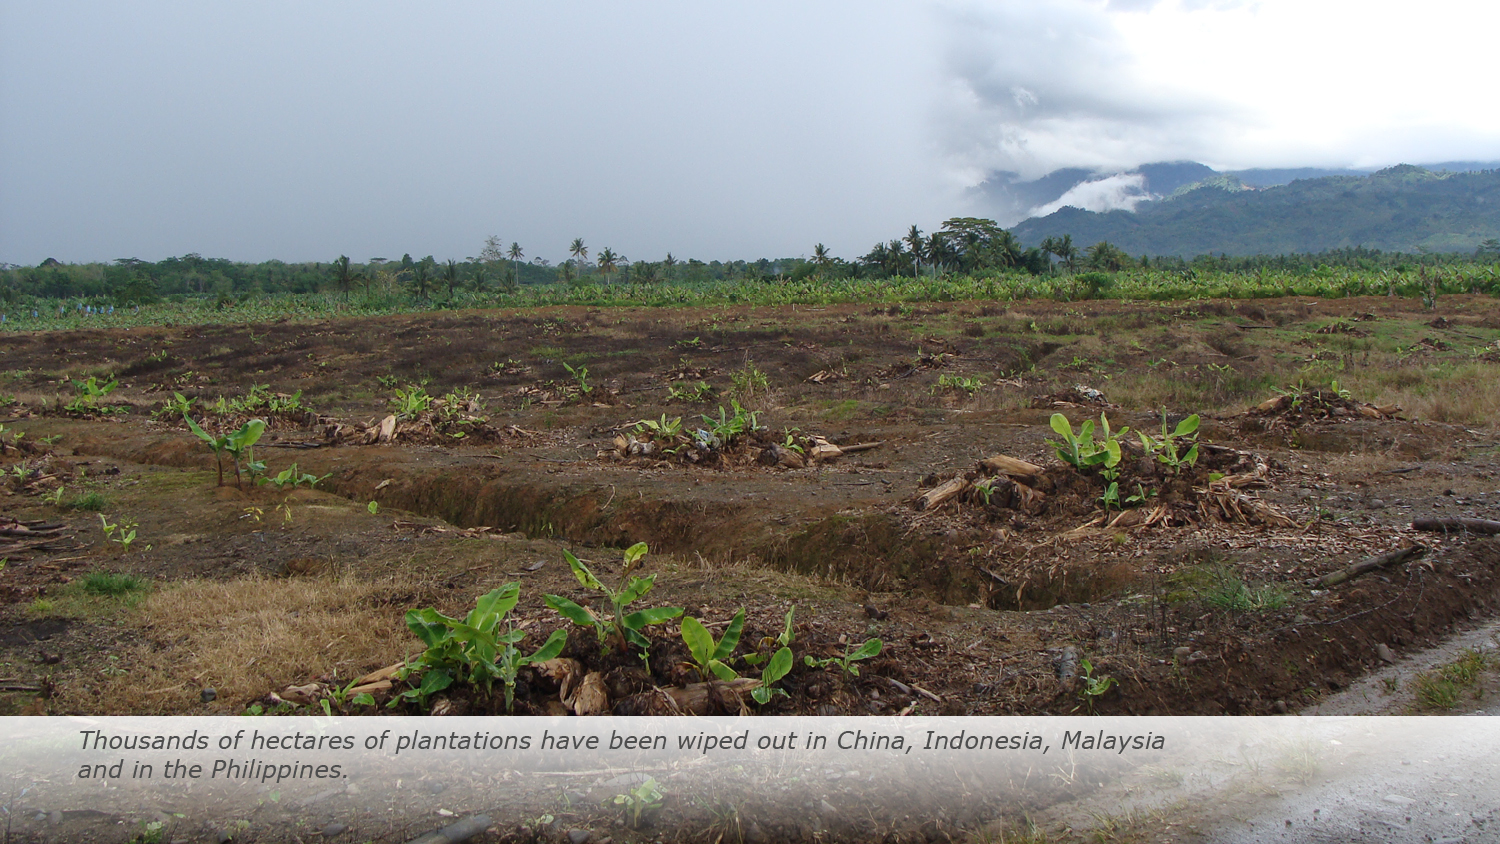 Thousands of hectares of plantations have been wiped out in China, Indonesia, Malaysia and in the Philippines.